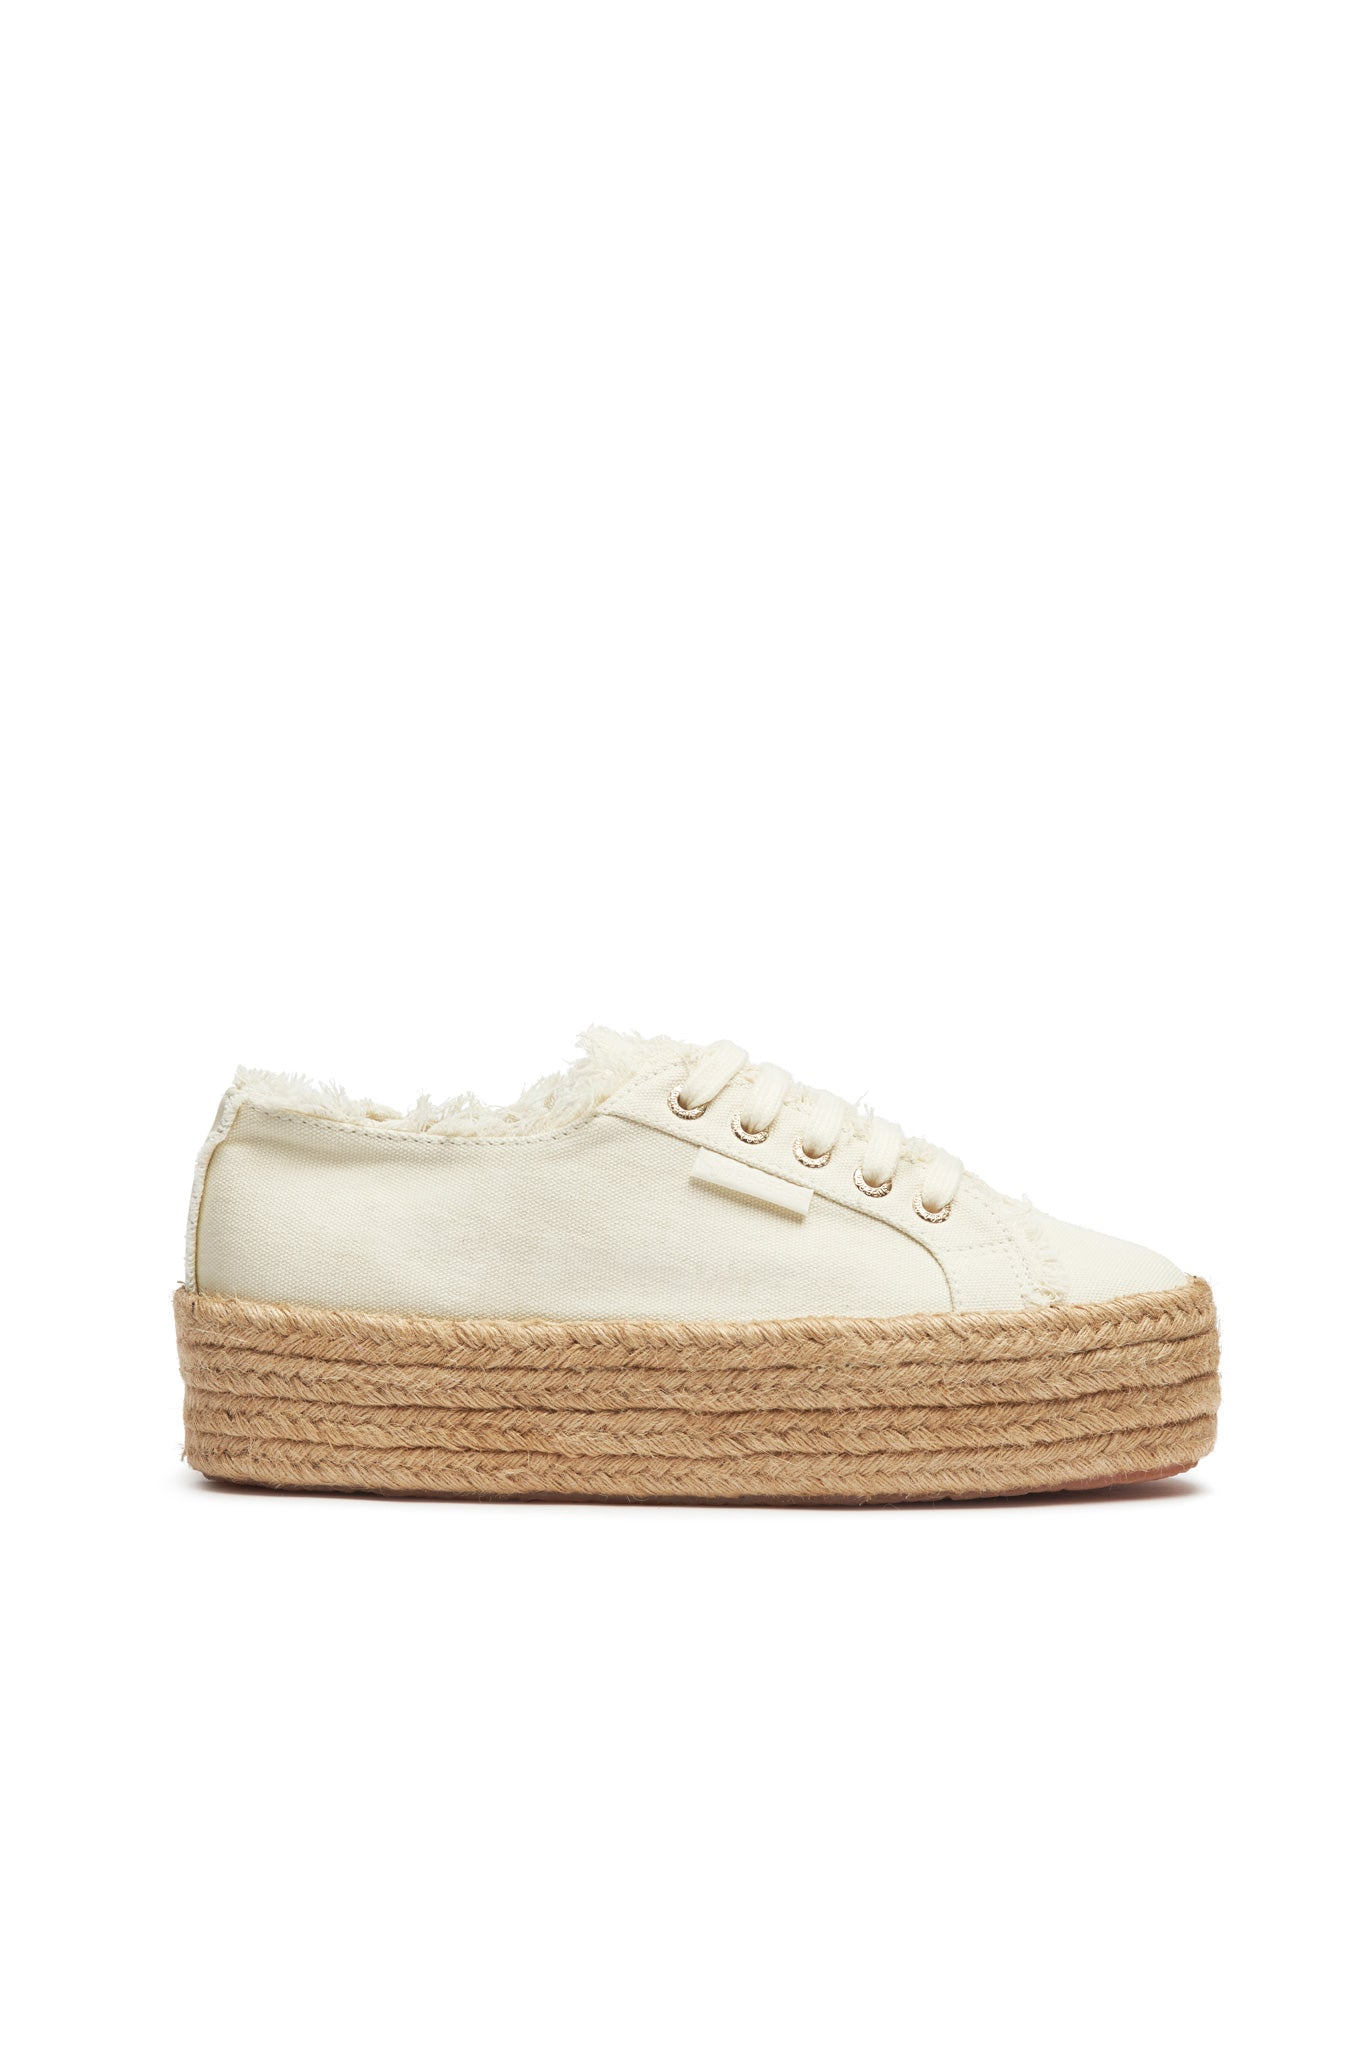 Aje x Superga Natural Platform Product View